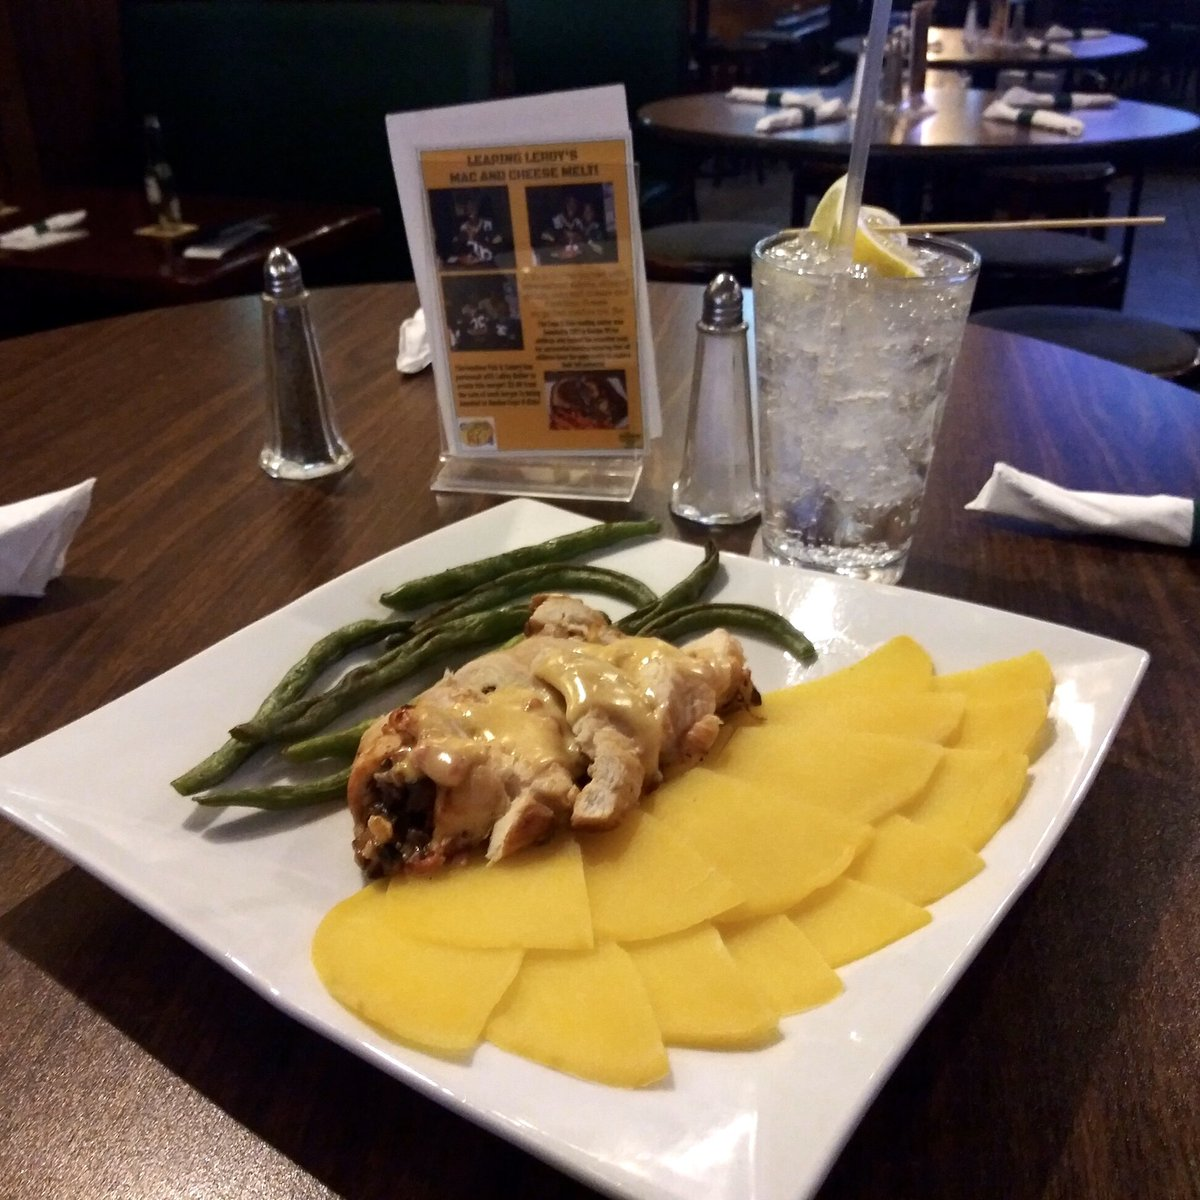 Introducing our new keto special this week! Baked chicken breast stuffed with bacon, mushrooms and gouda cheese served with rutabaga petals and green beans. #ketodiet #downtownracine<br>http://pic.twitter.com/7Bm4lQc3Pc